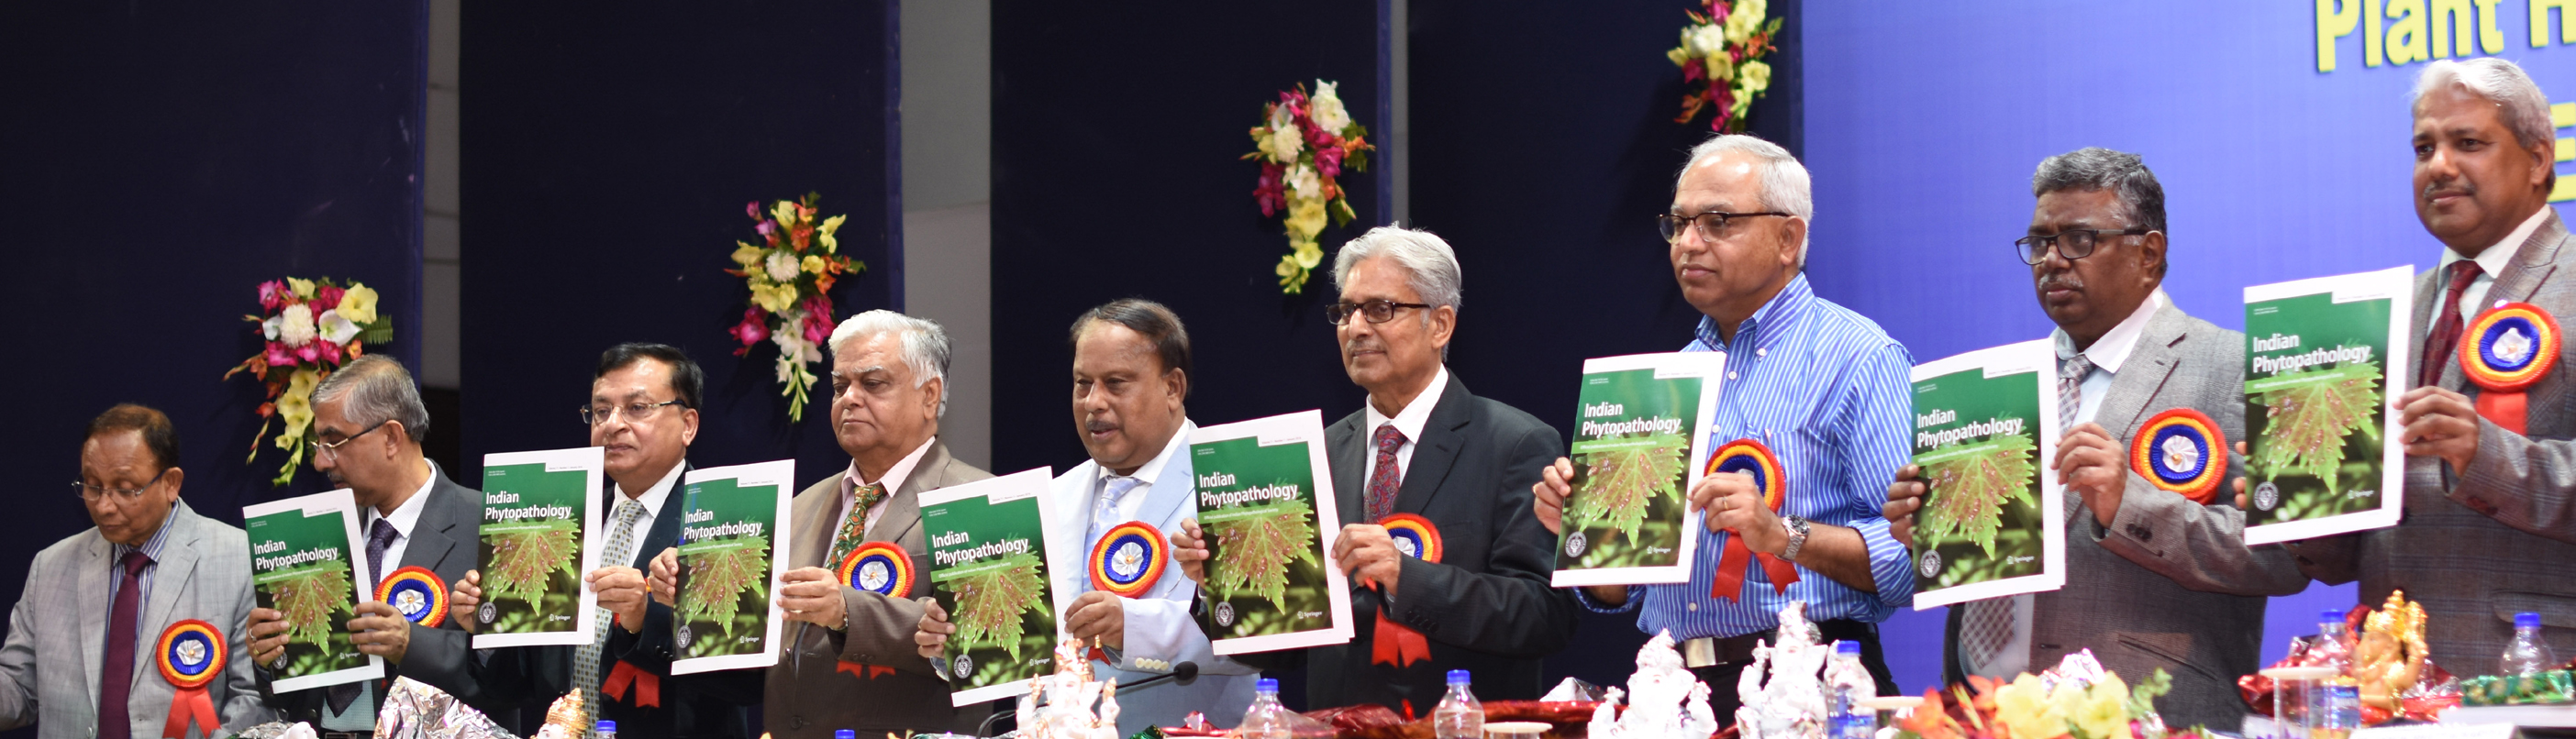 Release of coverpage of journal in National Symposium, AAU, Jorhat, Assam, Feb. 15-17, 2018